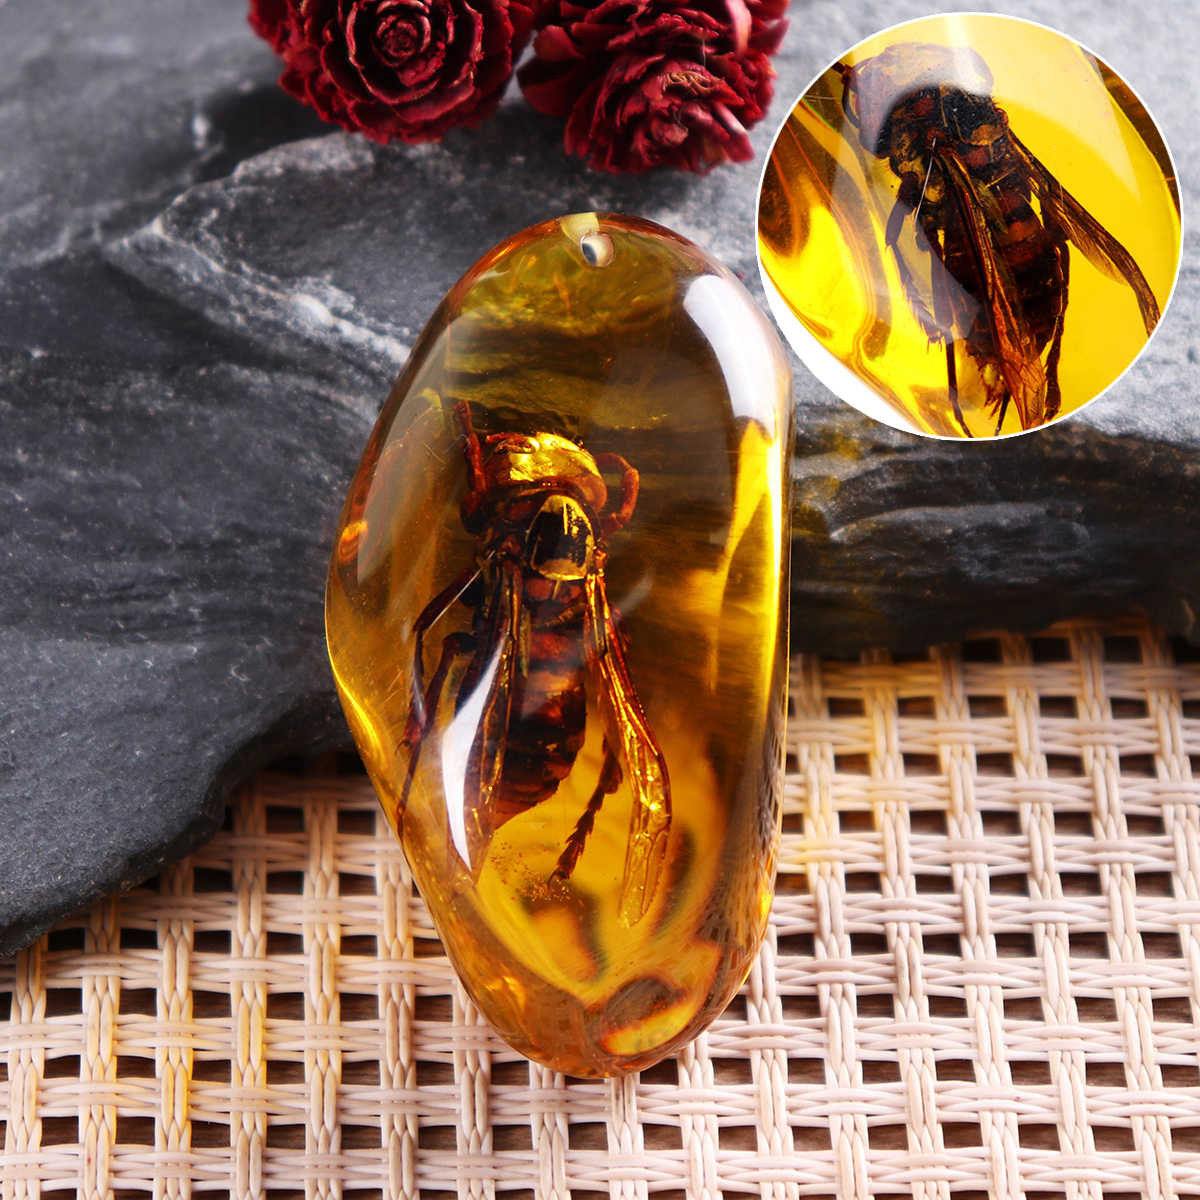 Fashion Natural Wasp Insect Stone Amber Pendant Necklace Sweater Decorations for DIY Jewellery Pendant Crafts Home Decor